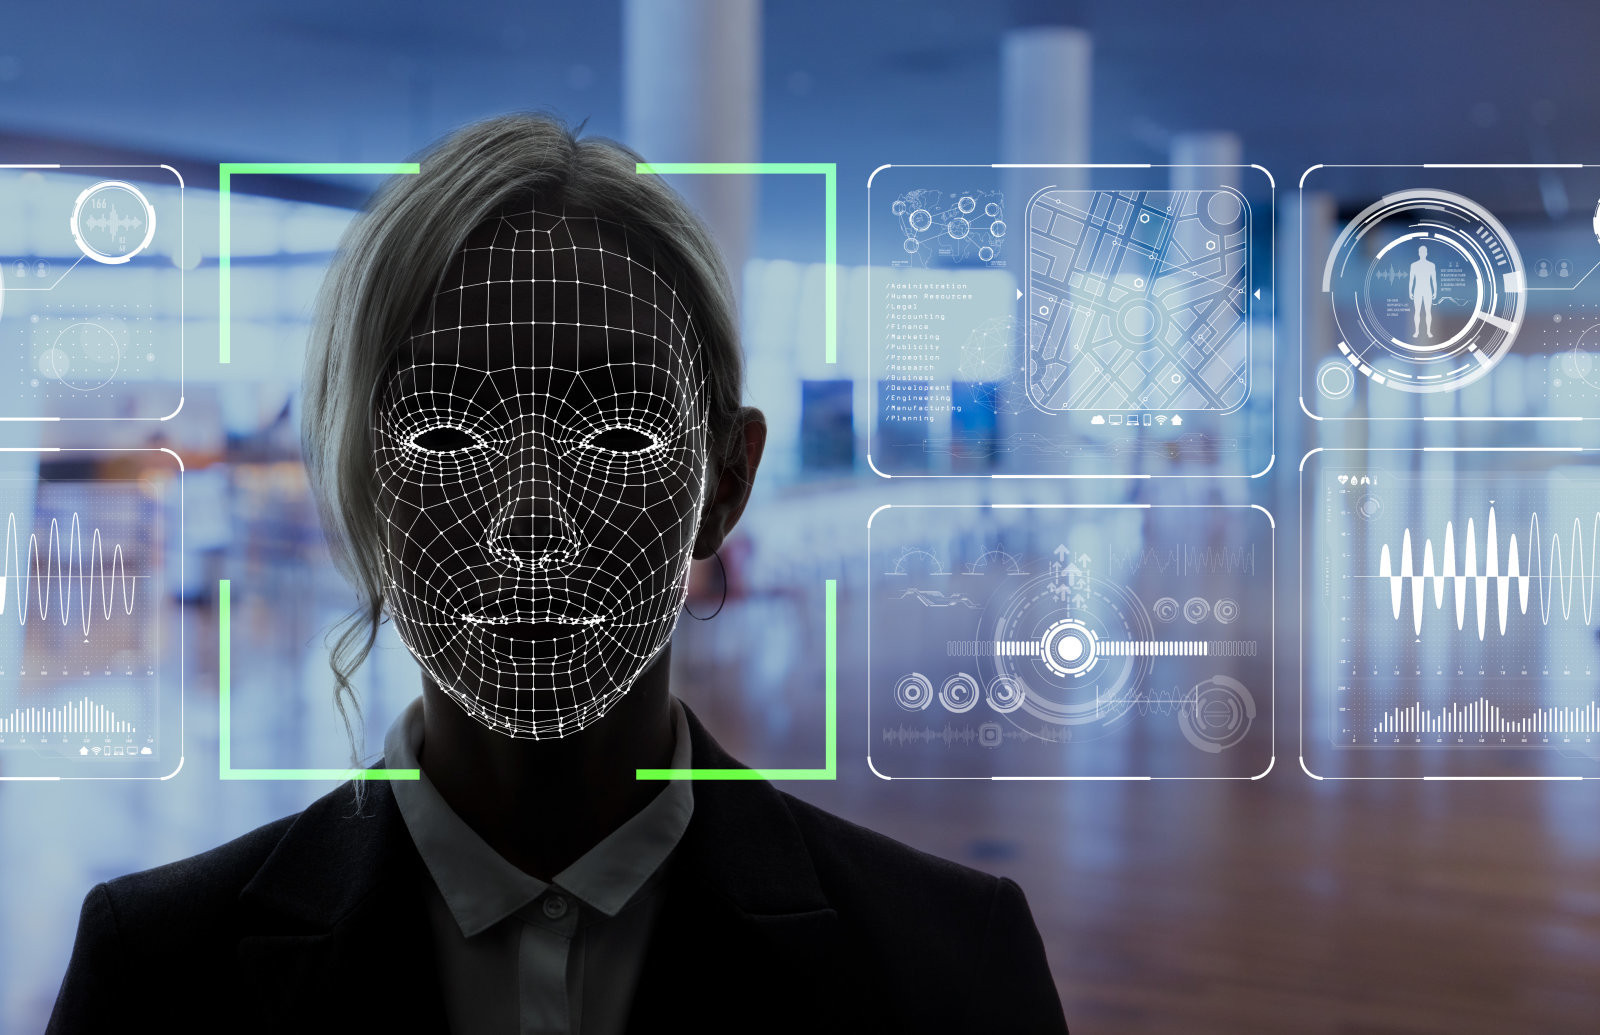 Researchers claim printed masks can fool facial recognition systems